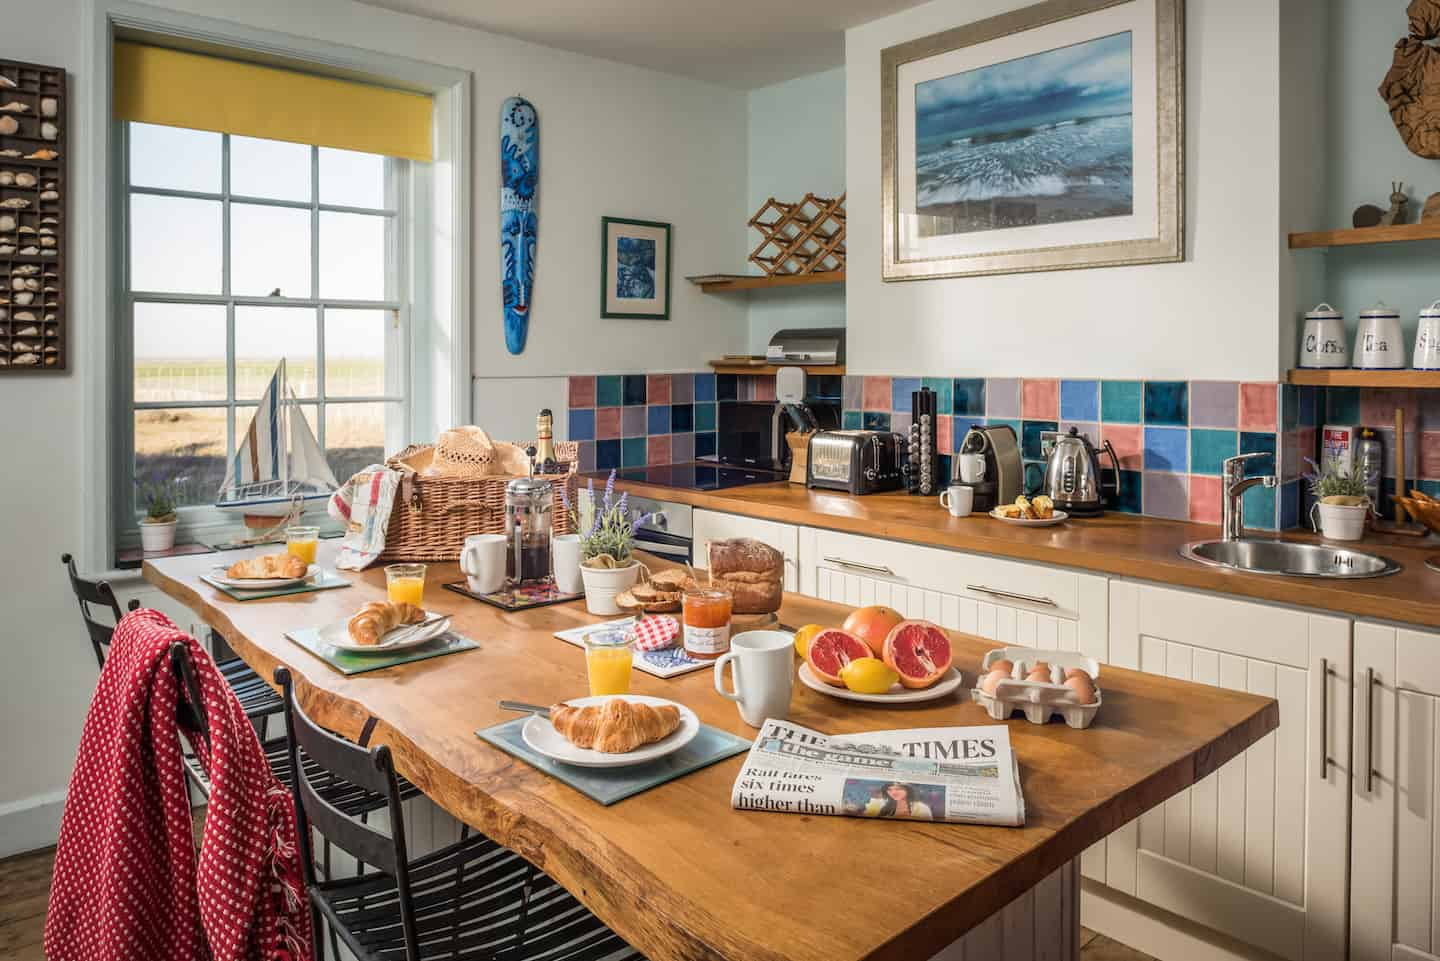 Dog-Friendly Travel Awards 2018 - Coastguard's Beach House 1